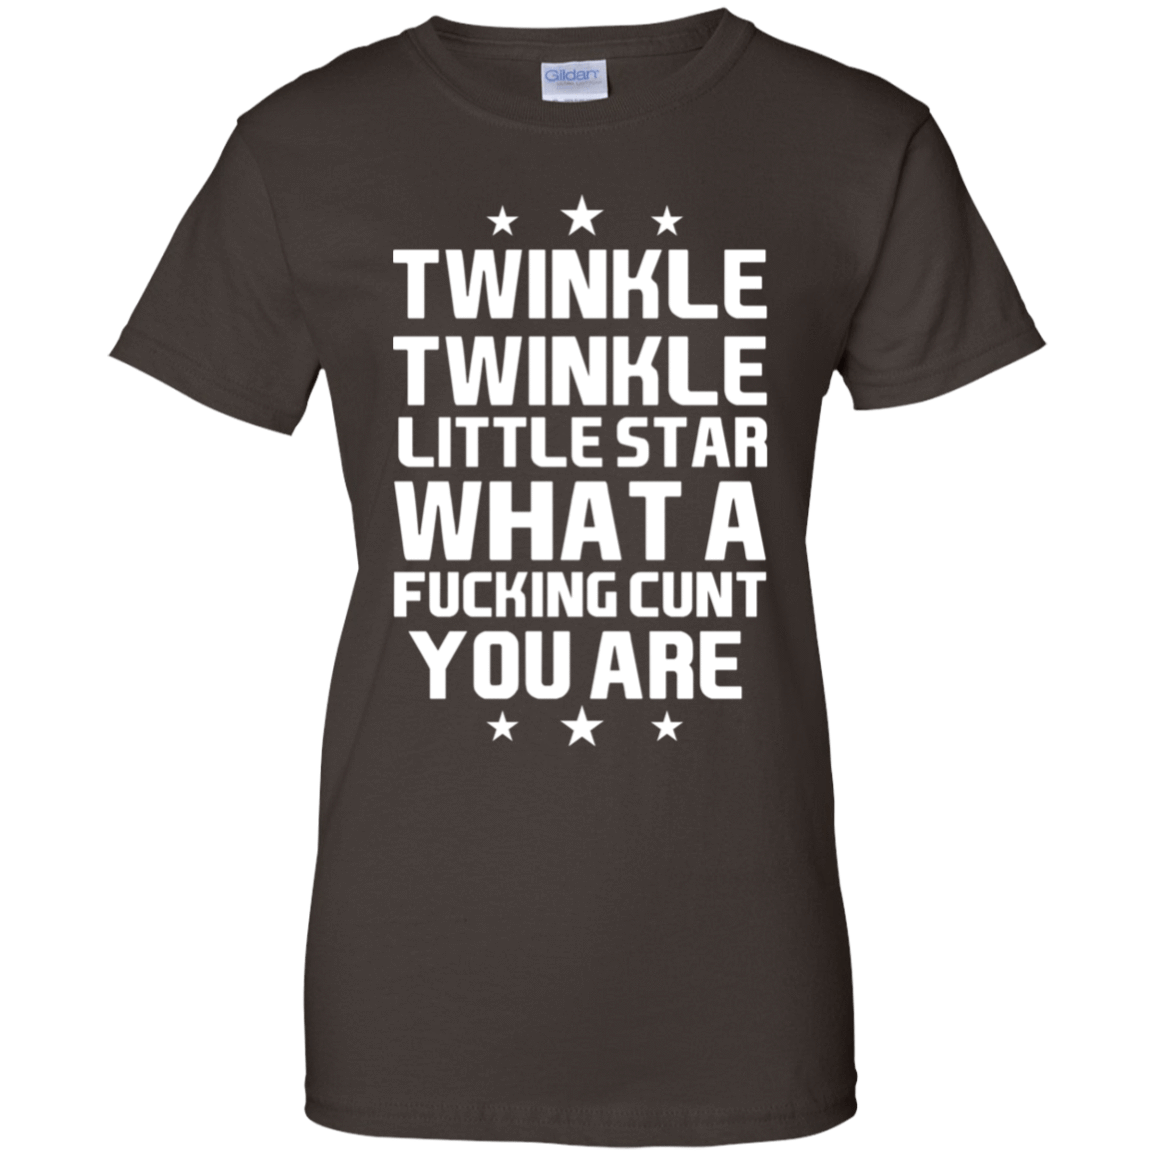 Twinkle Twinkle Little Star What A Fucking Cunt You Are T-Shirts, Hoodie, Tank 939-9251-77772957-44702 - Tee Ript